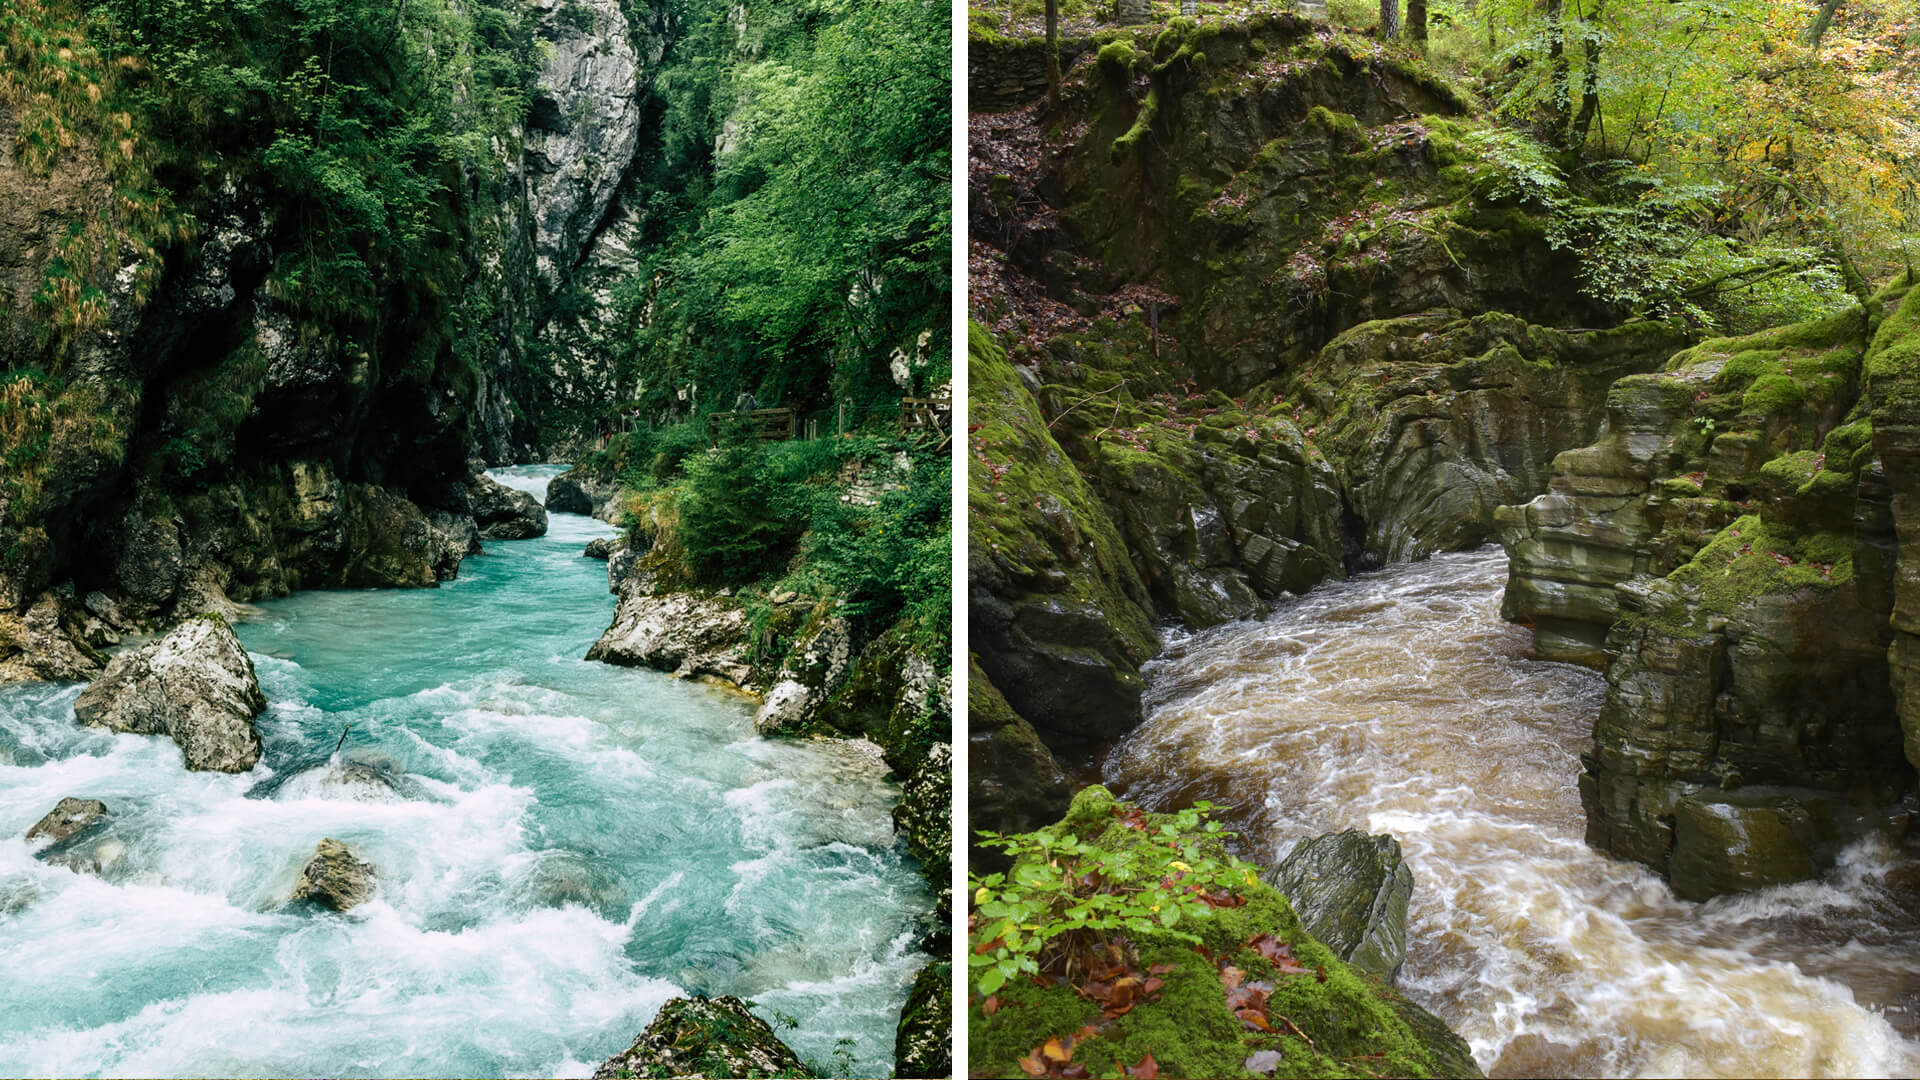 Slovenian Forests & Lakes Road Trip vs. Welsh Forests and Lakes Road Trip